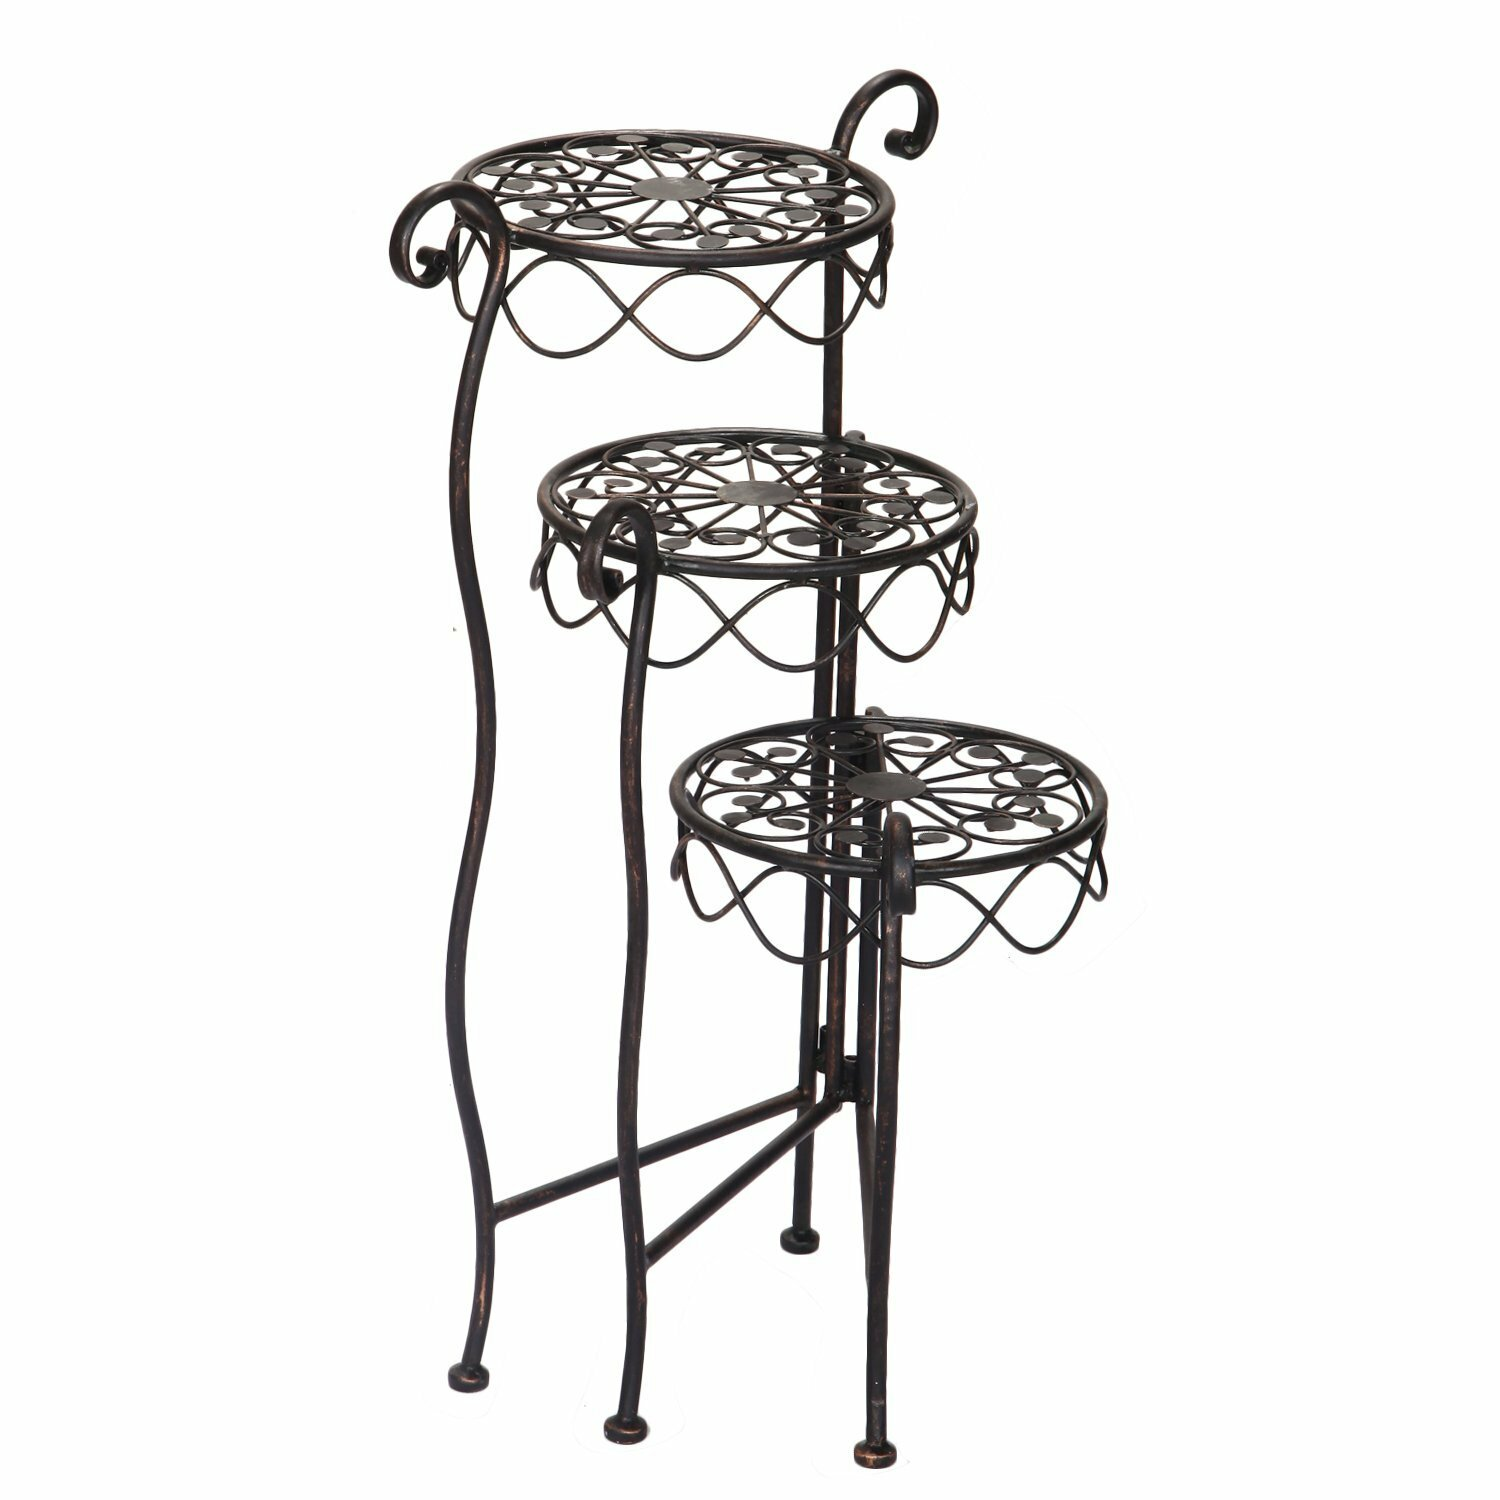 Adecotrading Multi Tiered Plant Stand Wayfair